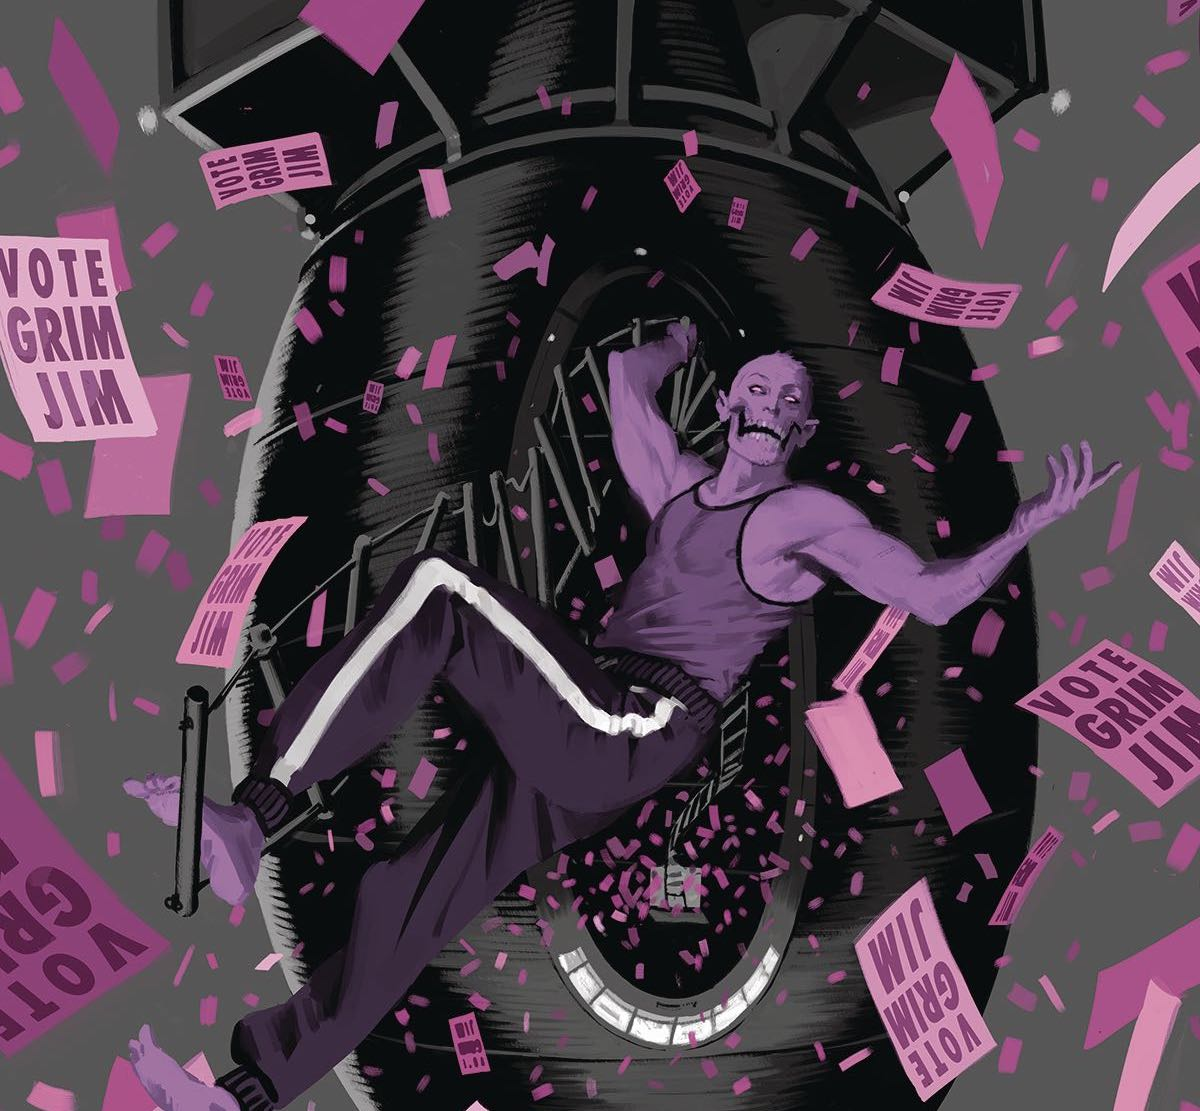 "I was incredibly impressed with the layout design in the first issue of Skulldigger and Skeleton Boy and also deeply interested how this story would diverge from the tropes we've seen in superhero tales before. Given Jeff Lemire said this is his ""love letter to Frank Miller,"" the tropes are very much on purpose. A commentary on superhero comics, Frank Miller in particular, with an artist in Tonci Zonjic to stretch our imaginations within this crime-alley inspired narrative? It sounds like a winning formula."